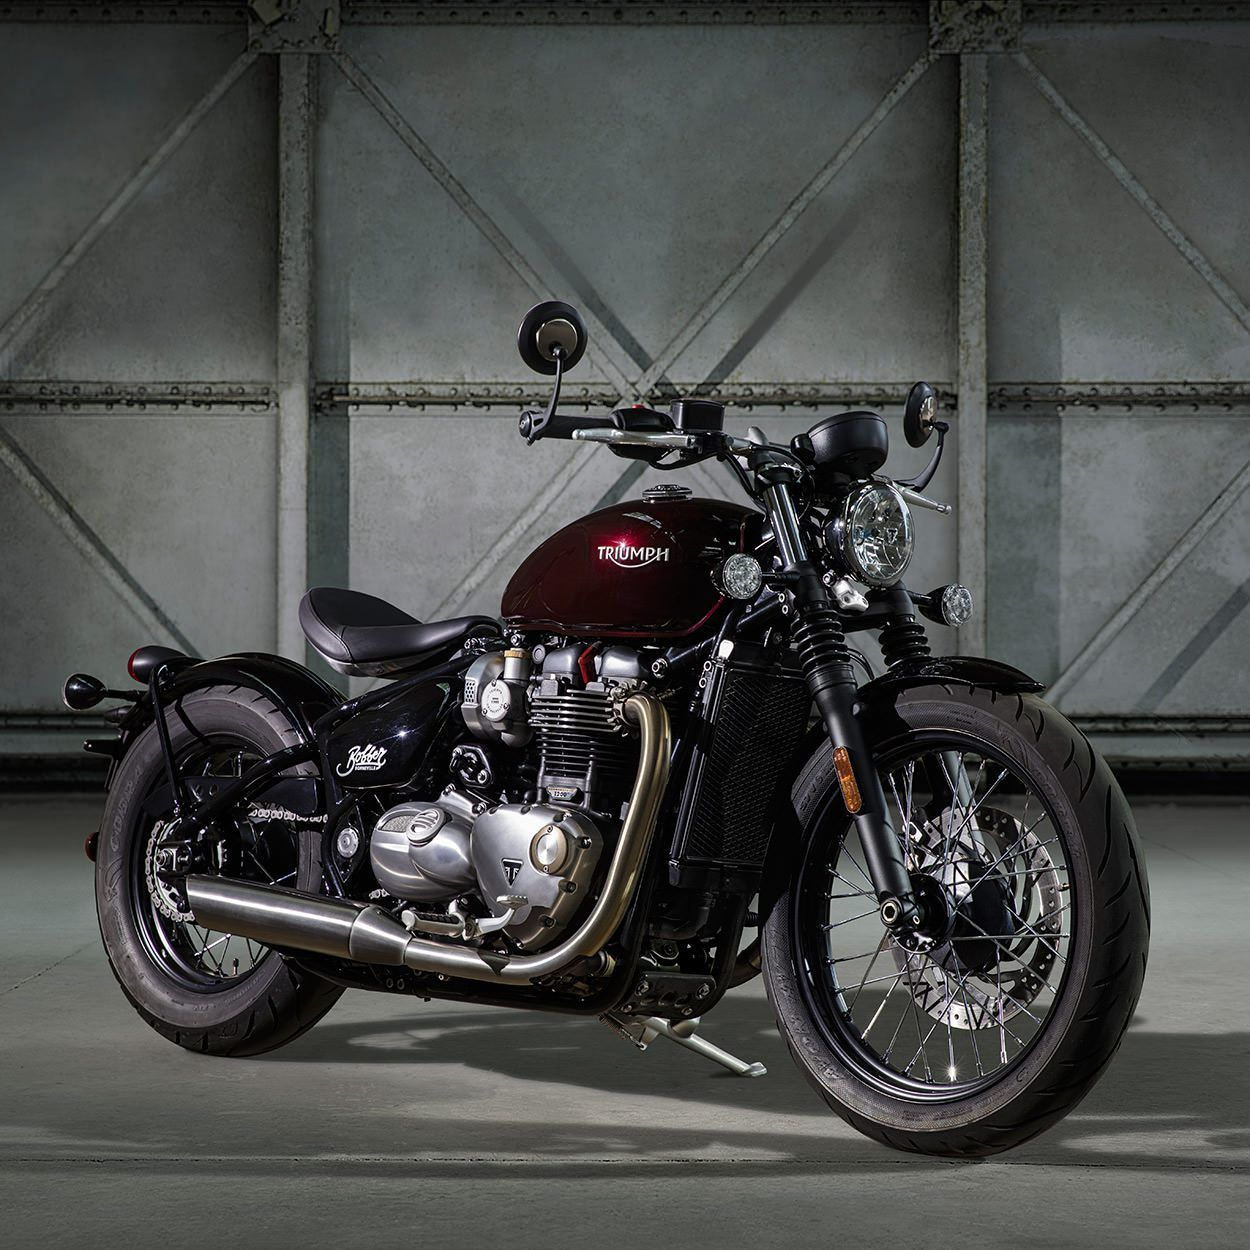 The Triumph Bonneville lineup is growing for 2017. Triumph to add the Bonneville Bobber, Street Cup and a new T100.